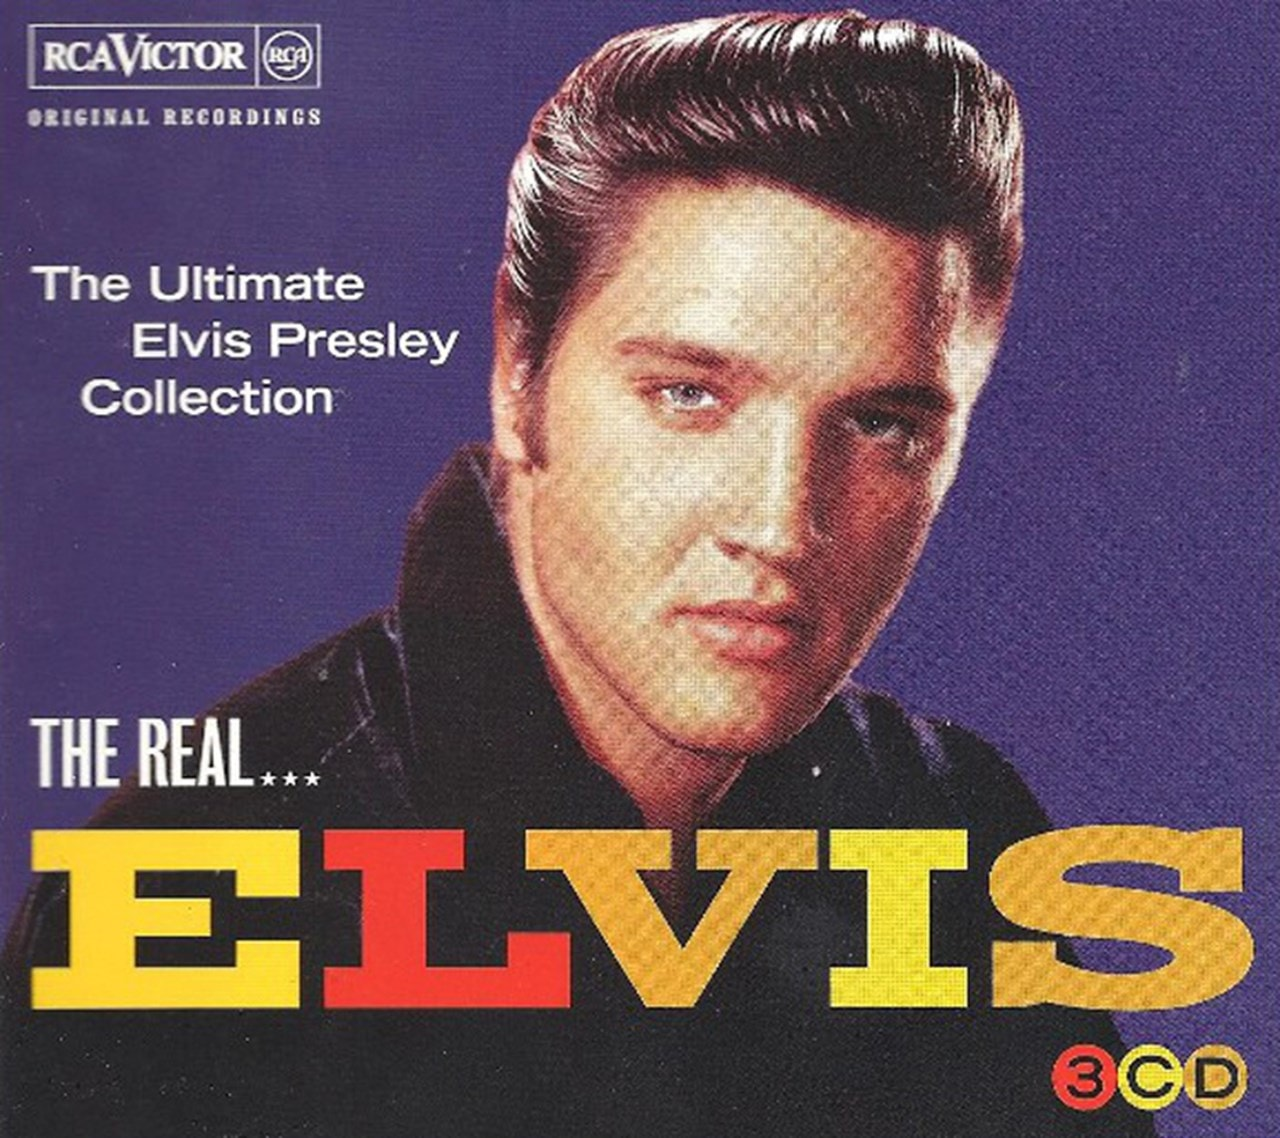 The Real Elvis - 1